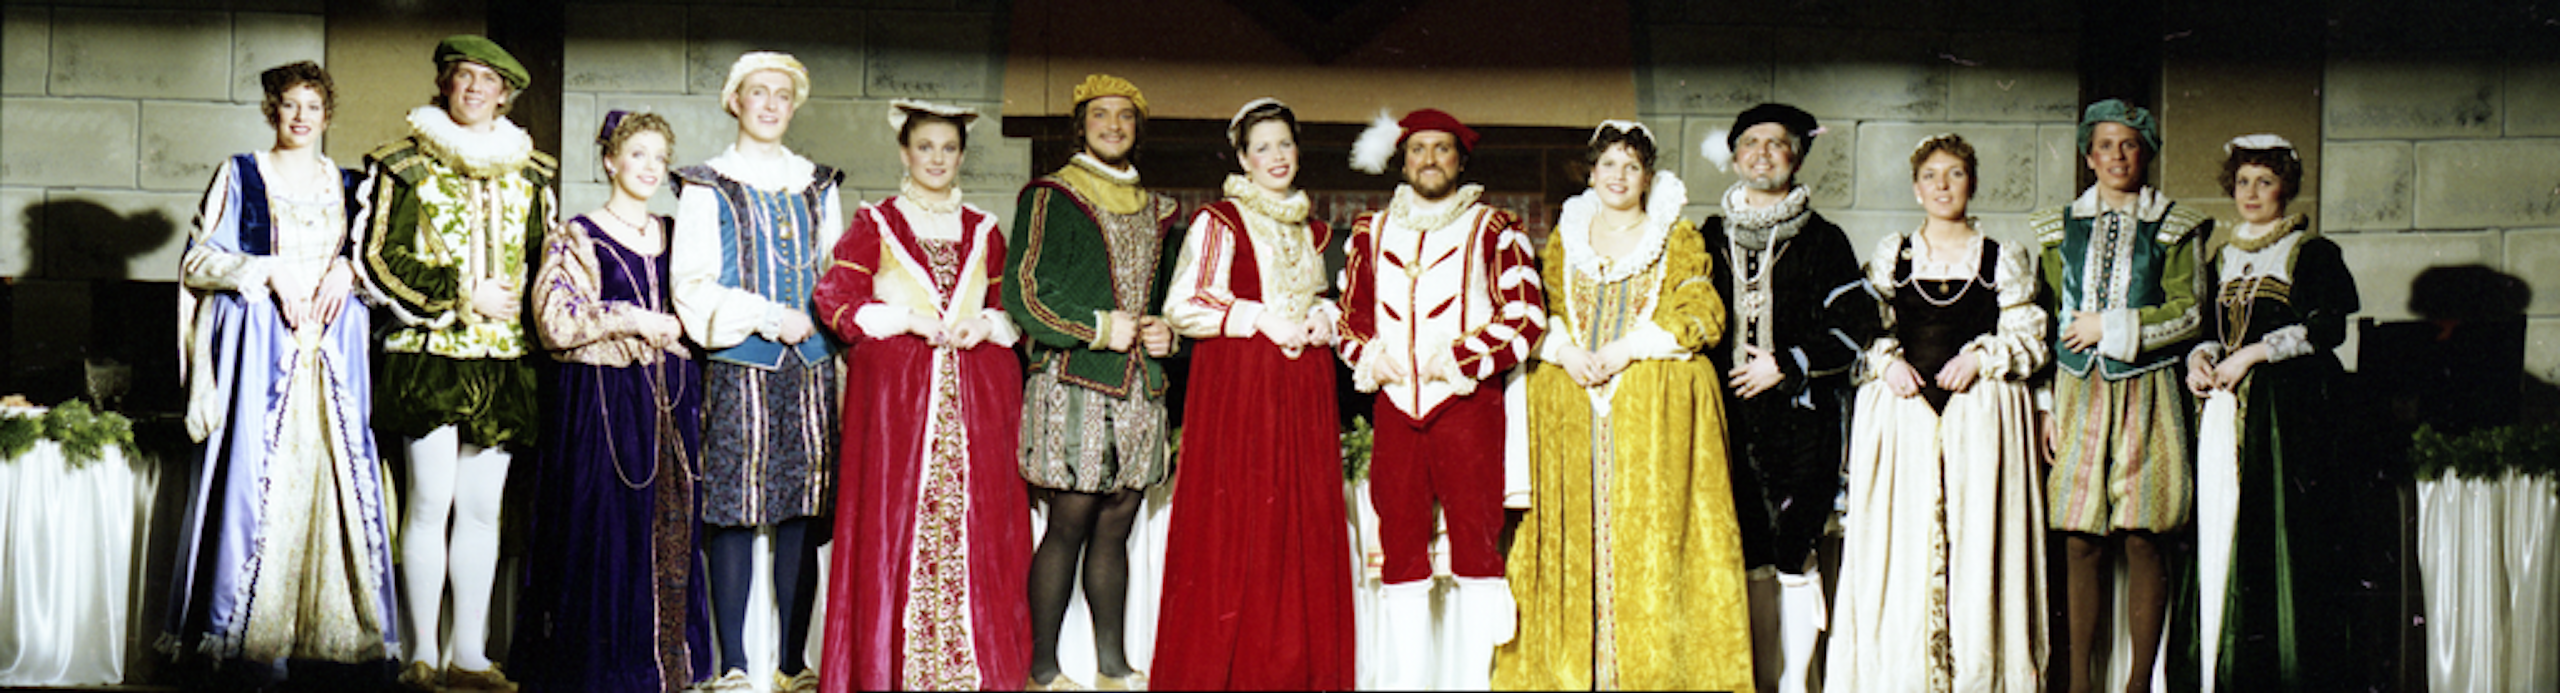 The King's Court, 1986